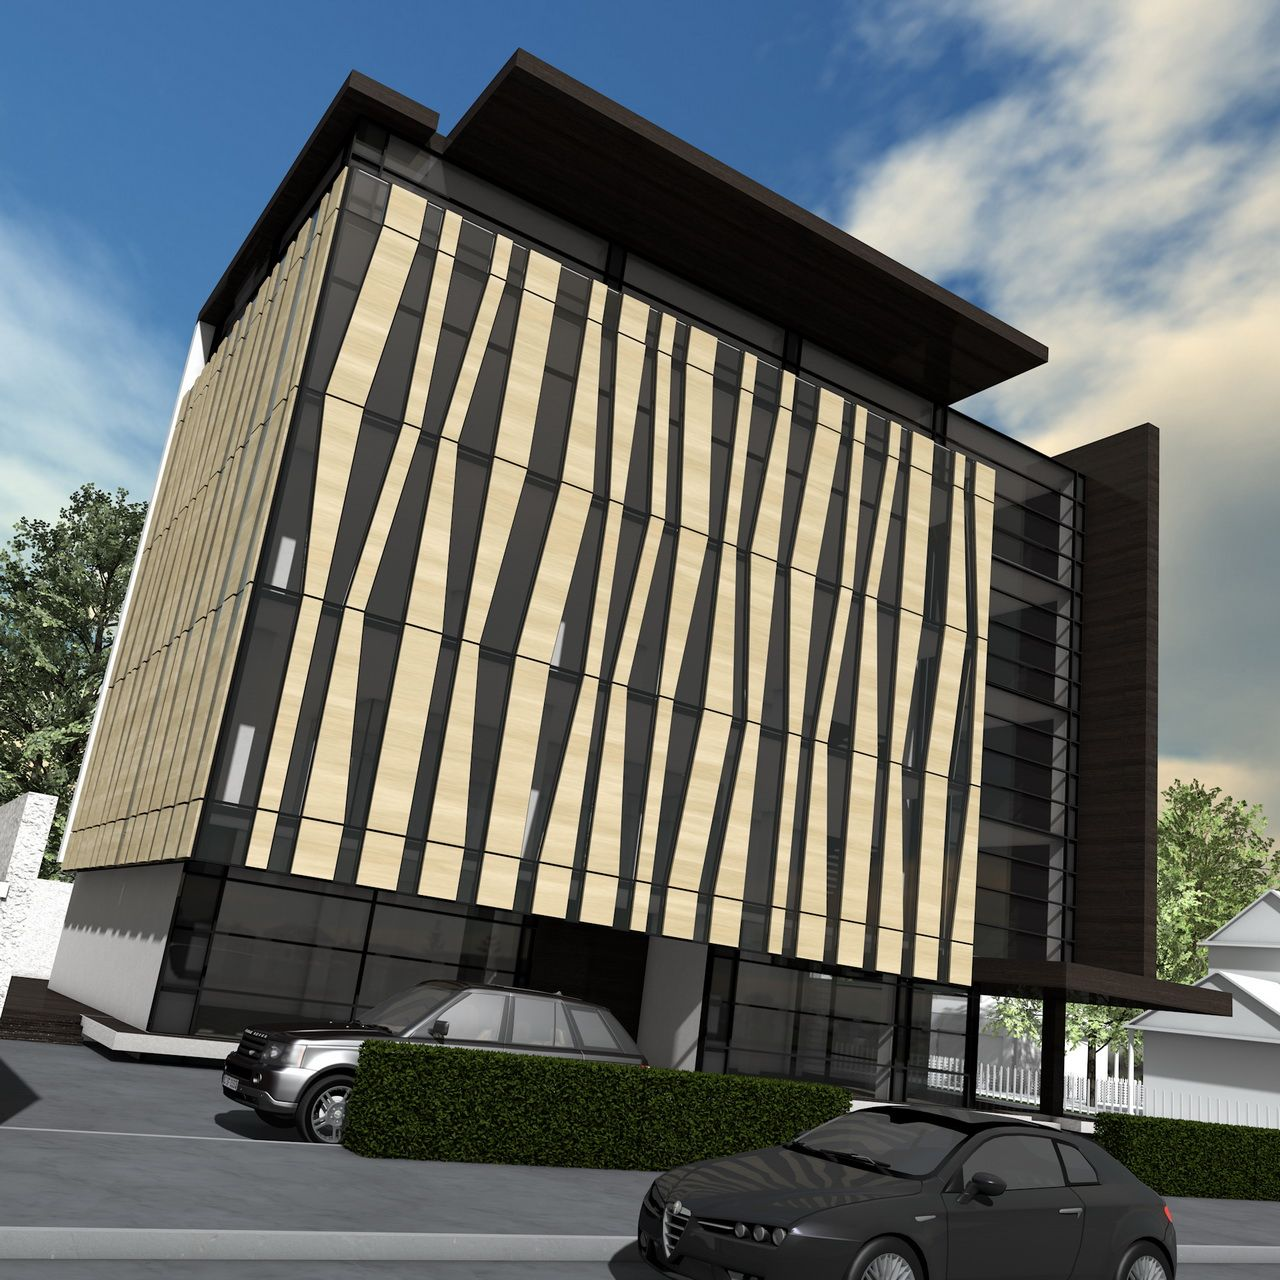 Corporate Building Design: Small Office Building - PIPERA